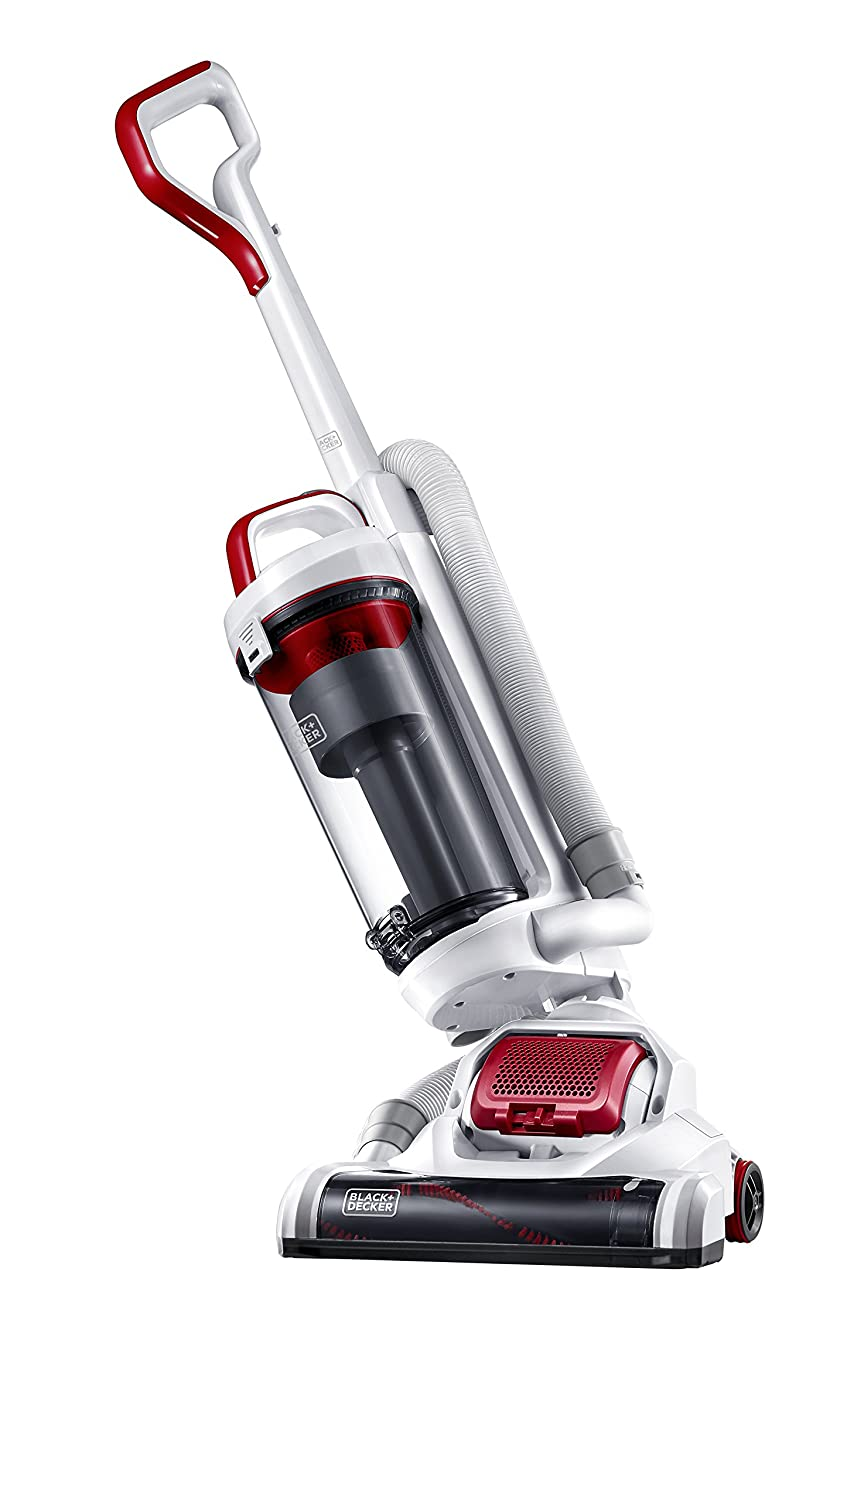 The 10 Best Vacuum Cleaners In 2018: Sharp, Compact And Quiet 20